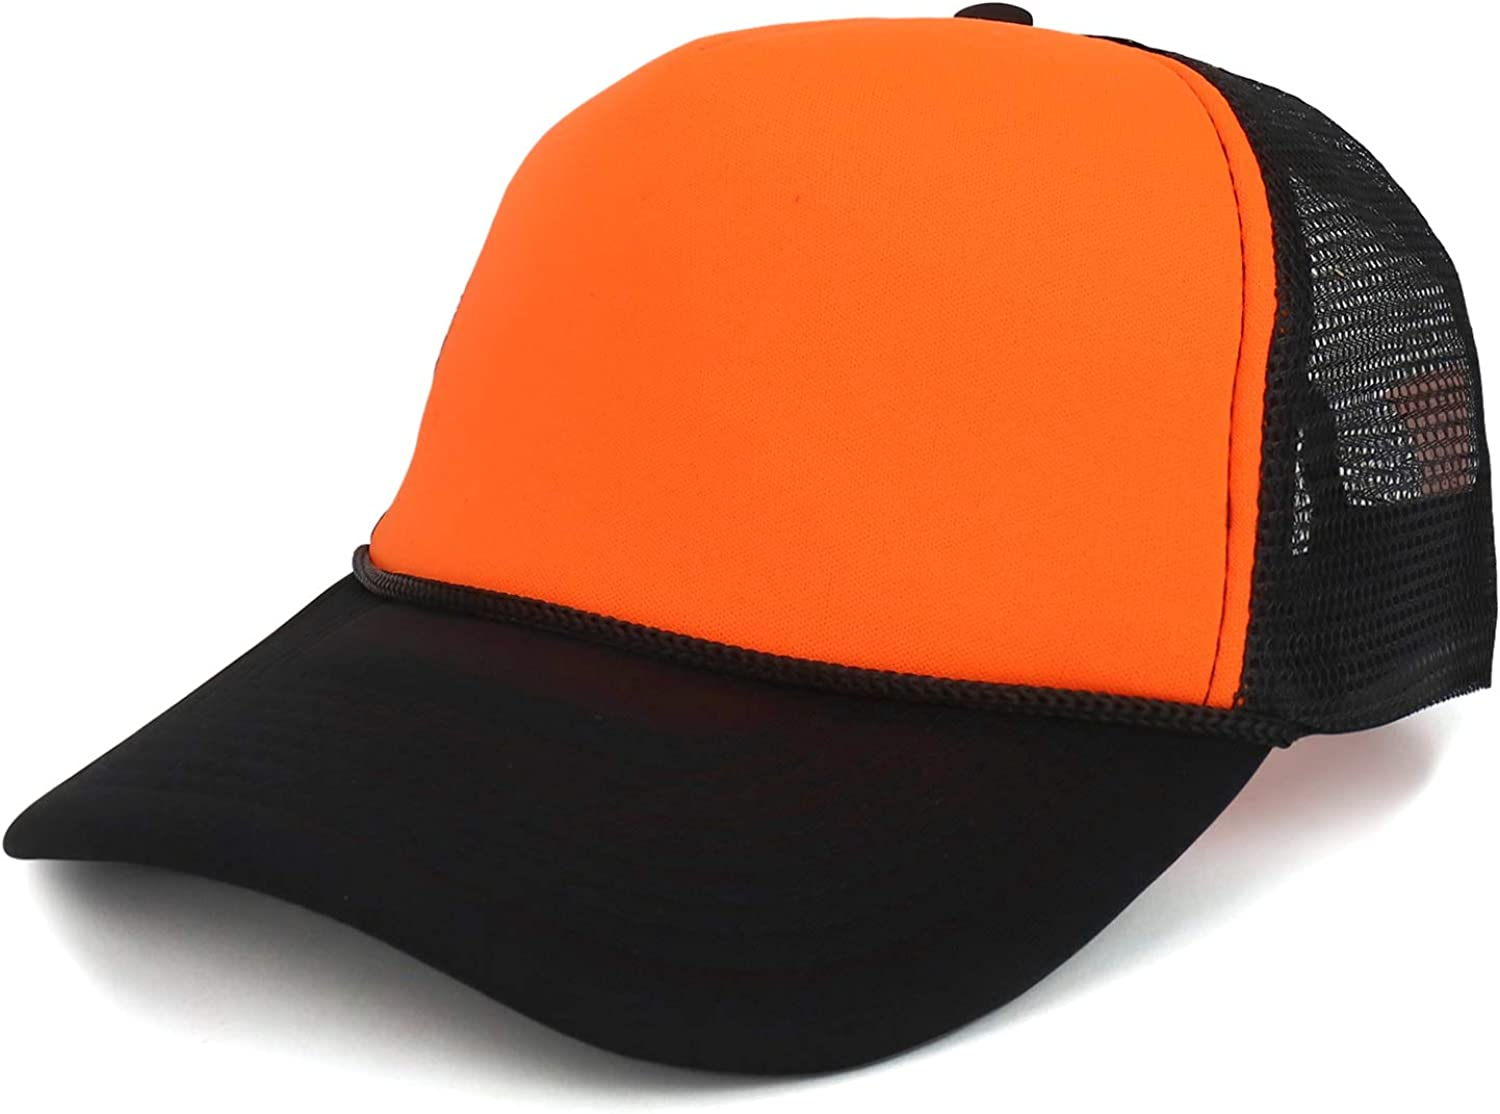 Armycrew Two Tone Neon High Visibility Foam Trucker Mesh Back Cap